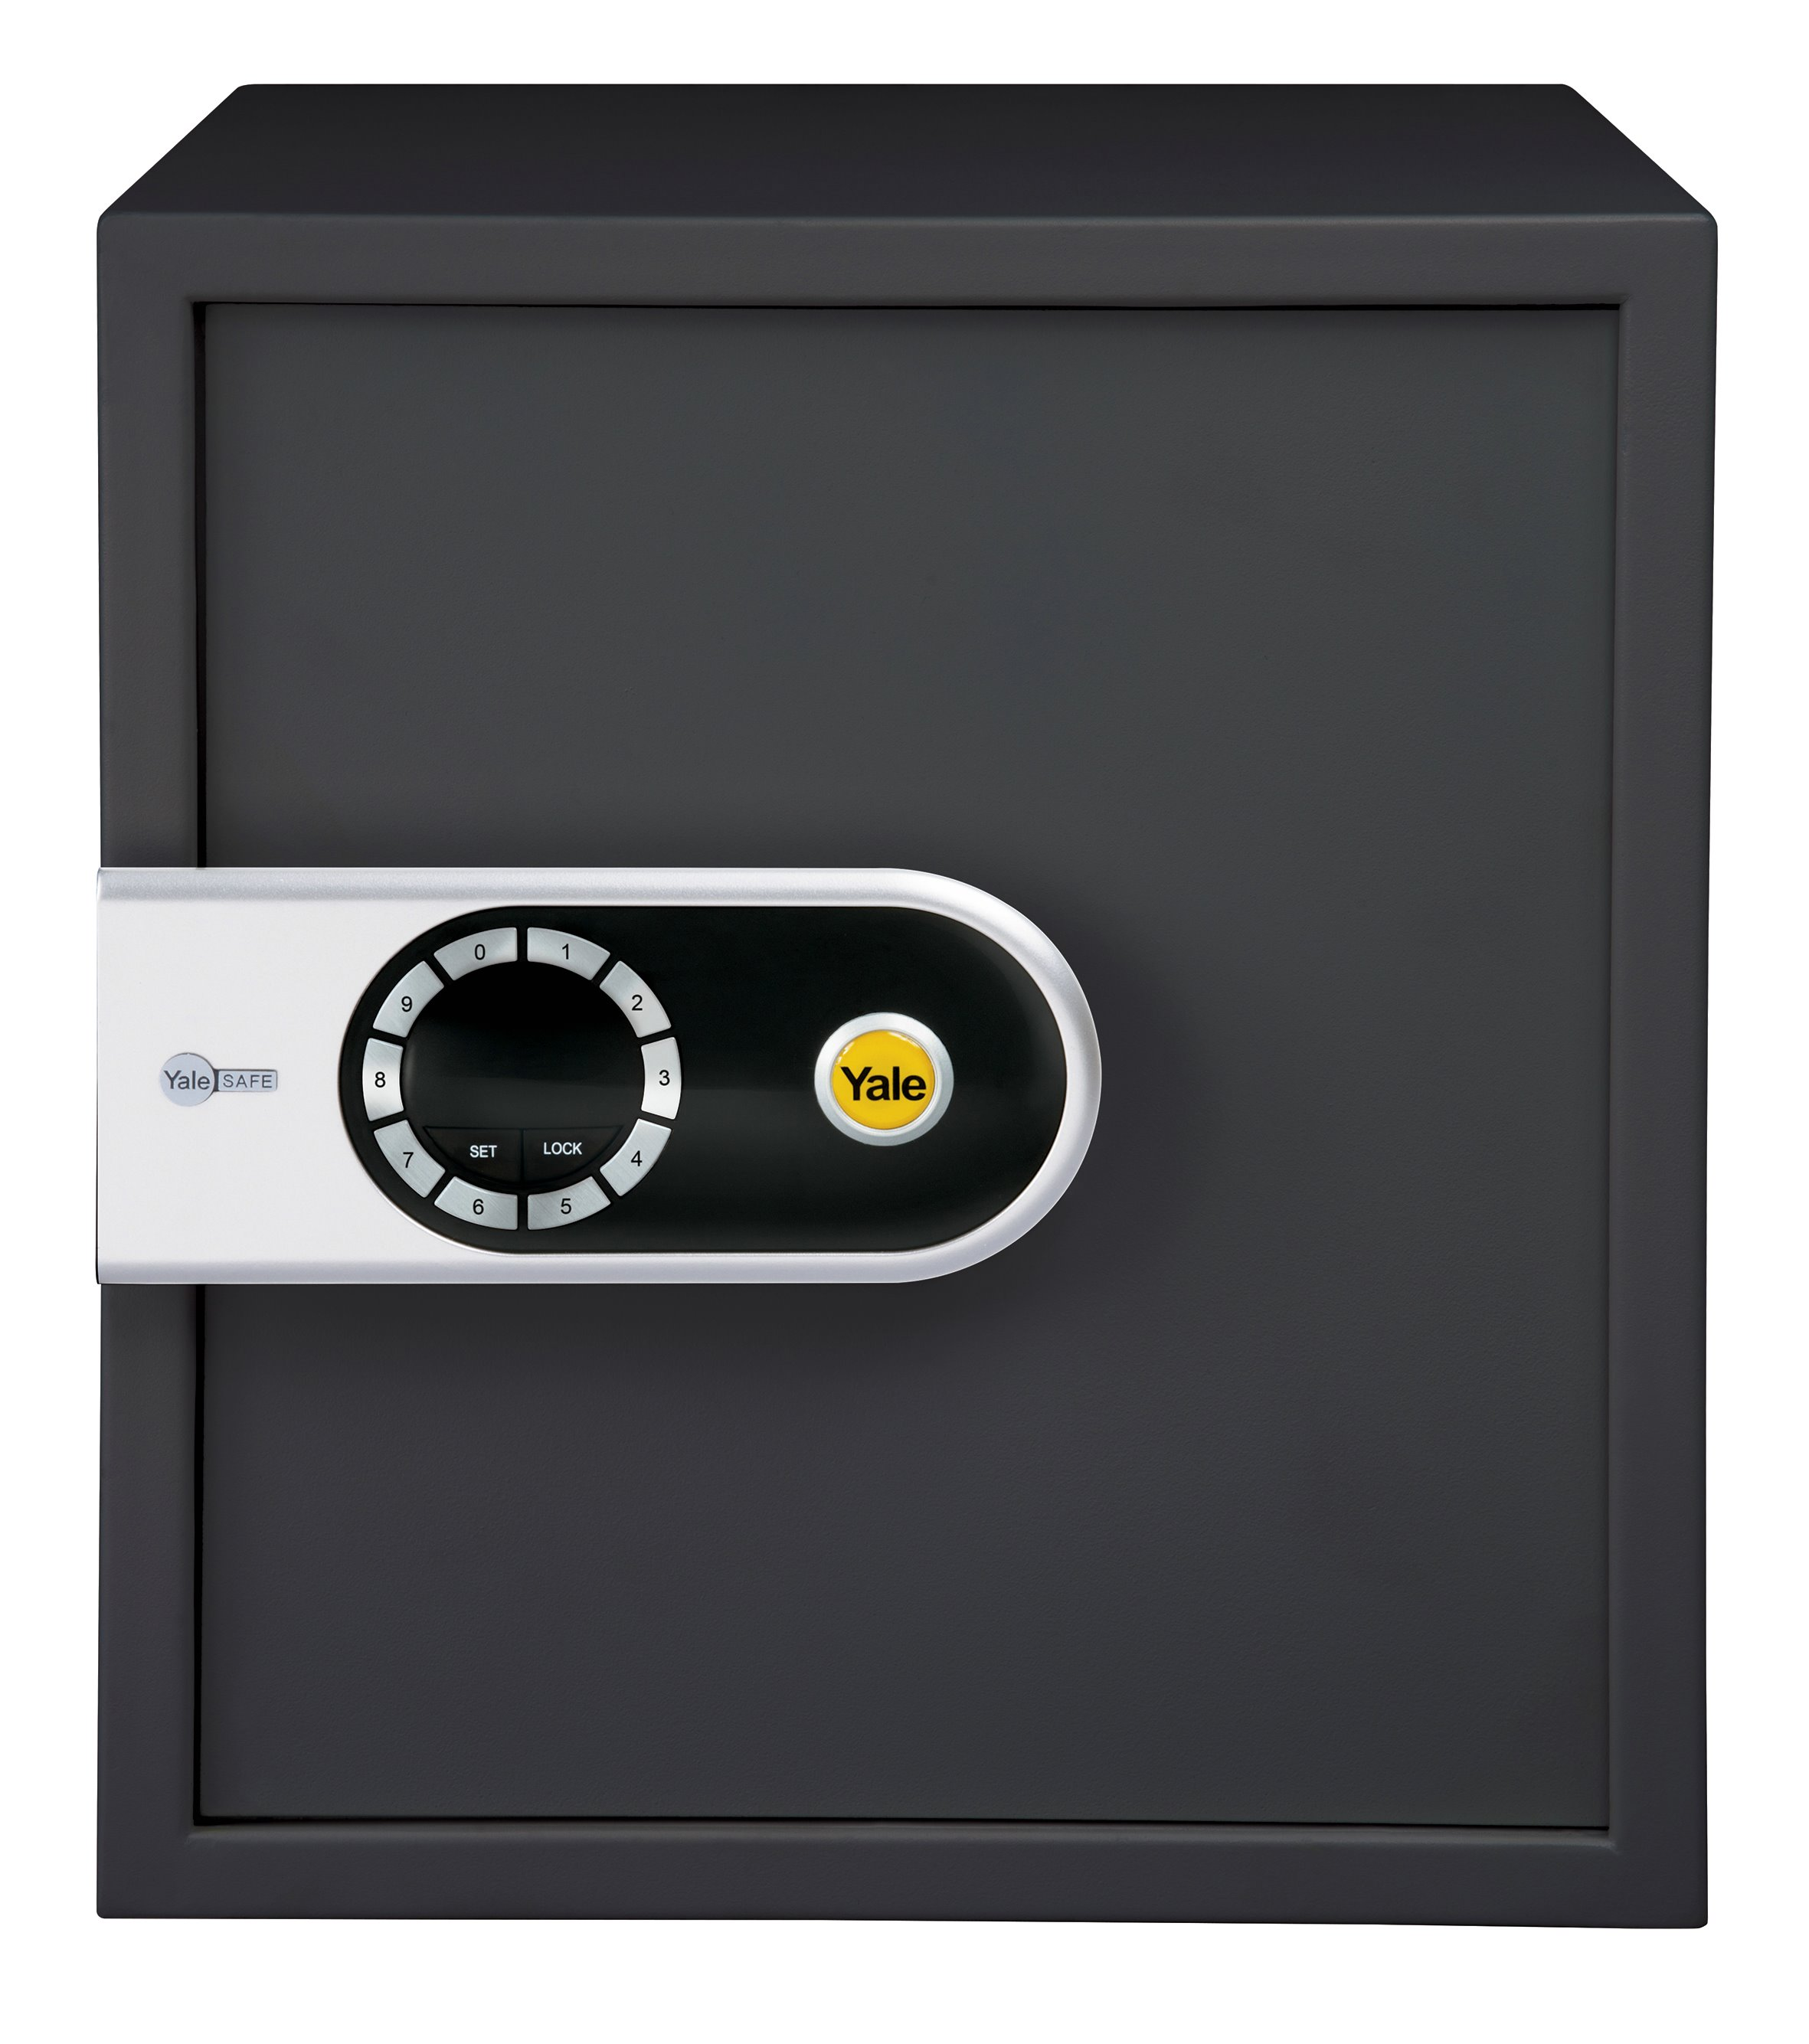 YSEL/390/EG7 - Yale Elite Digital Safes (Large)